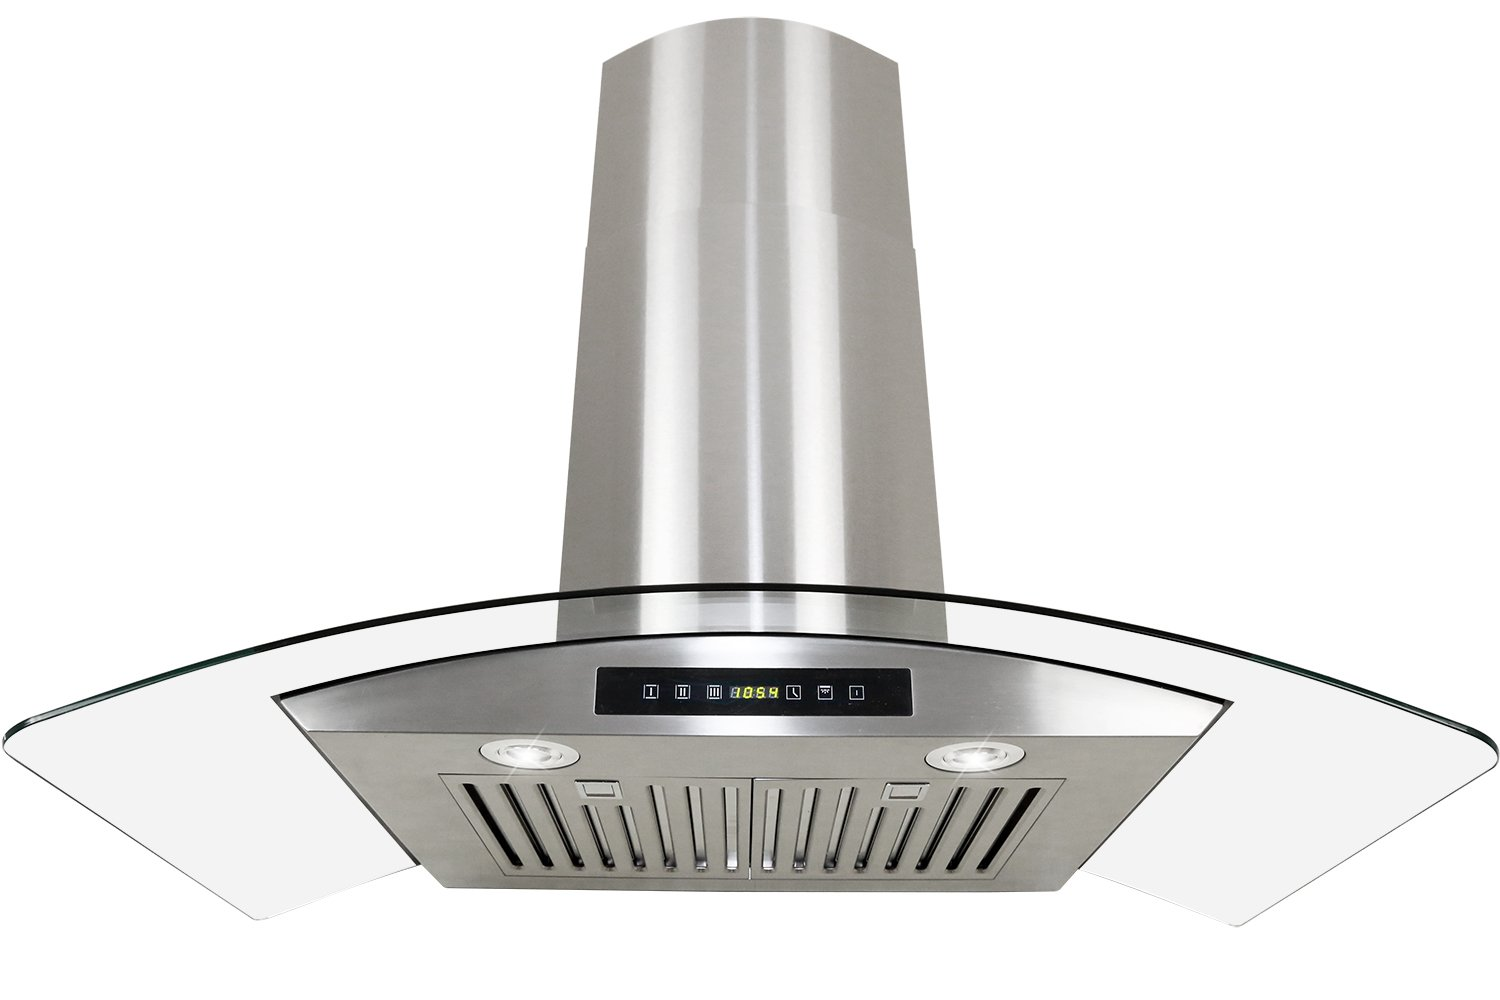 Golden Vantage Stainless Steel 30 Euro Style Wall Mount Range Hood LED TOUCH SCREEN W/Baffle Filter GV-H703C-B30